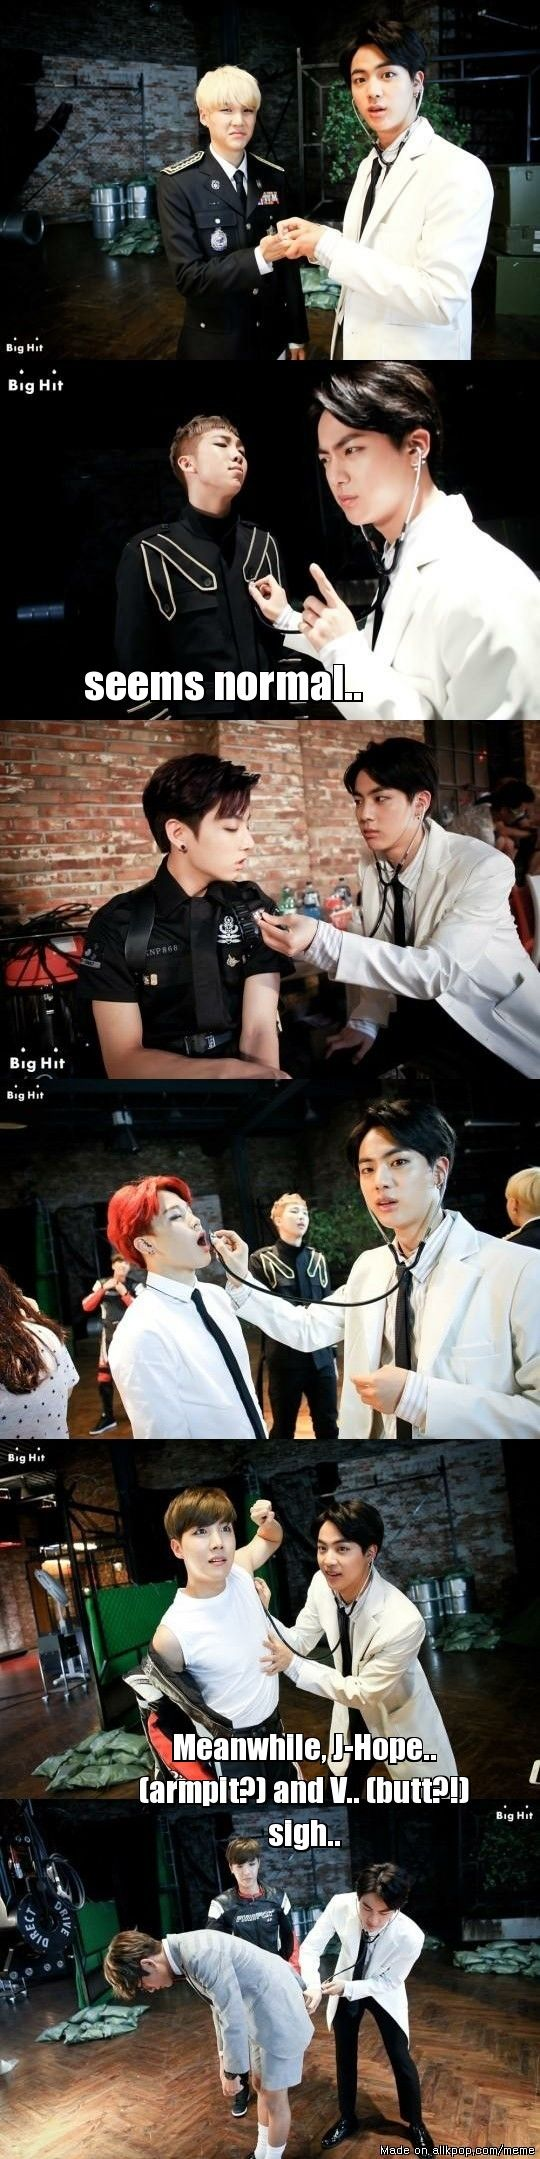 Jin The Doctor in action | allkpop Meme Center